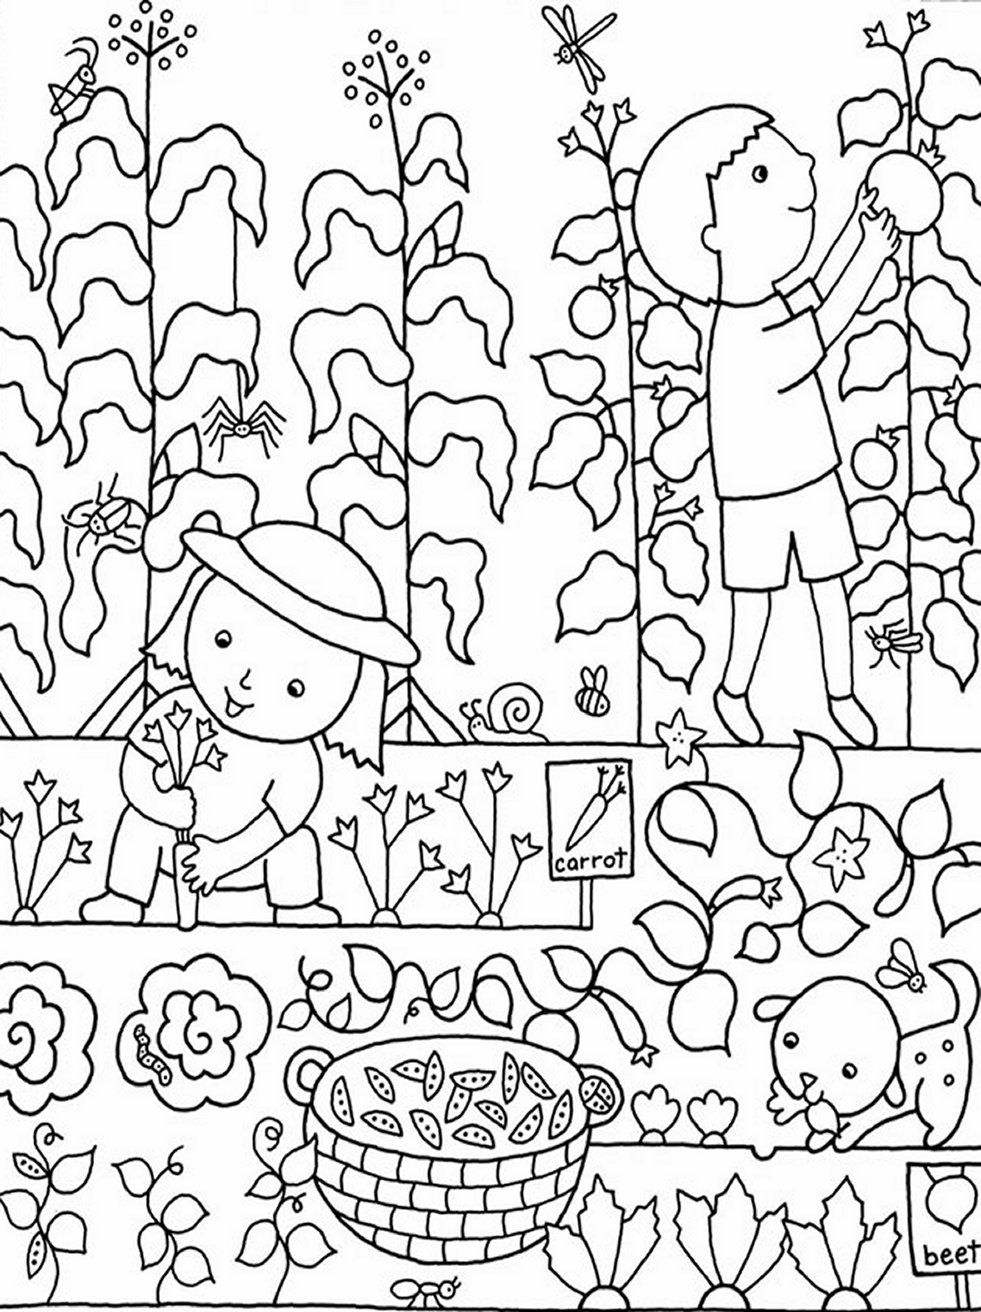 Free coloring pages spring flowers - Kids Gardening Coloring Pages Free Colouring Pictures To Print